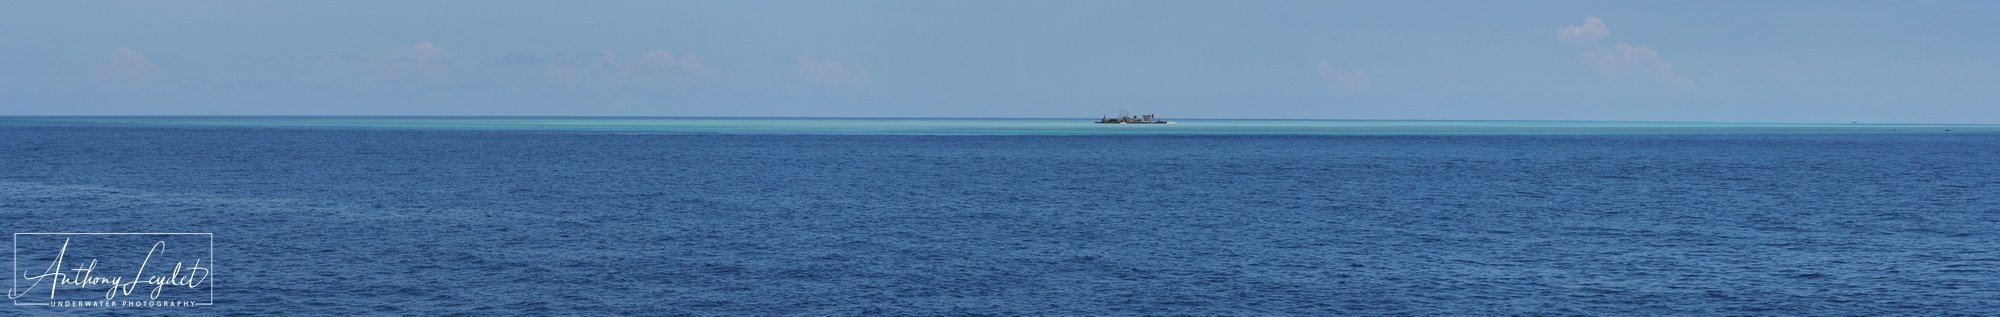 TUBBATAHA REEFS - South atoll view